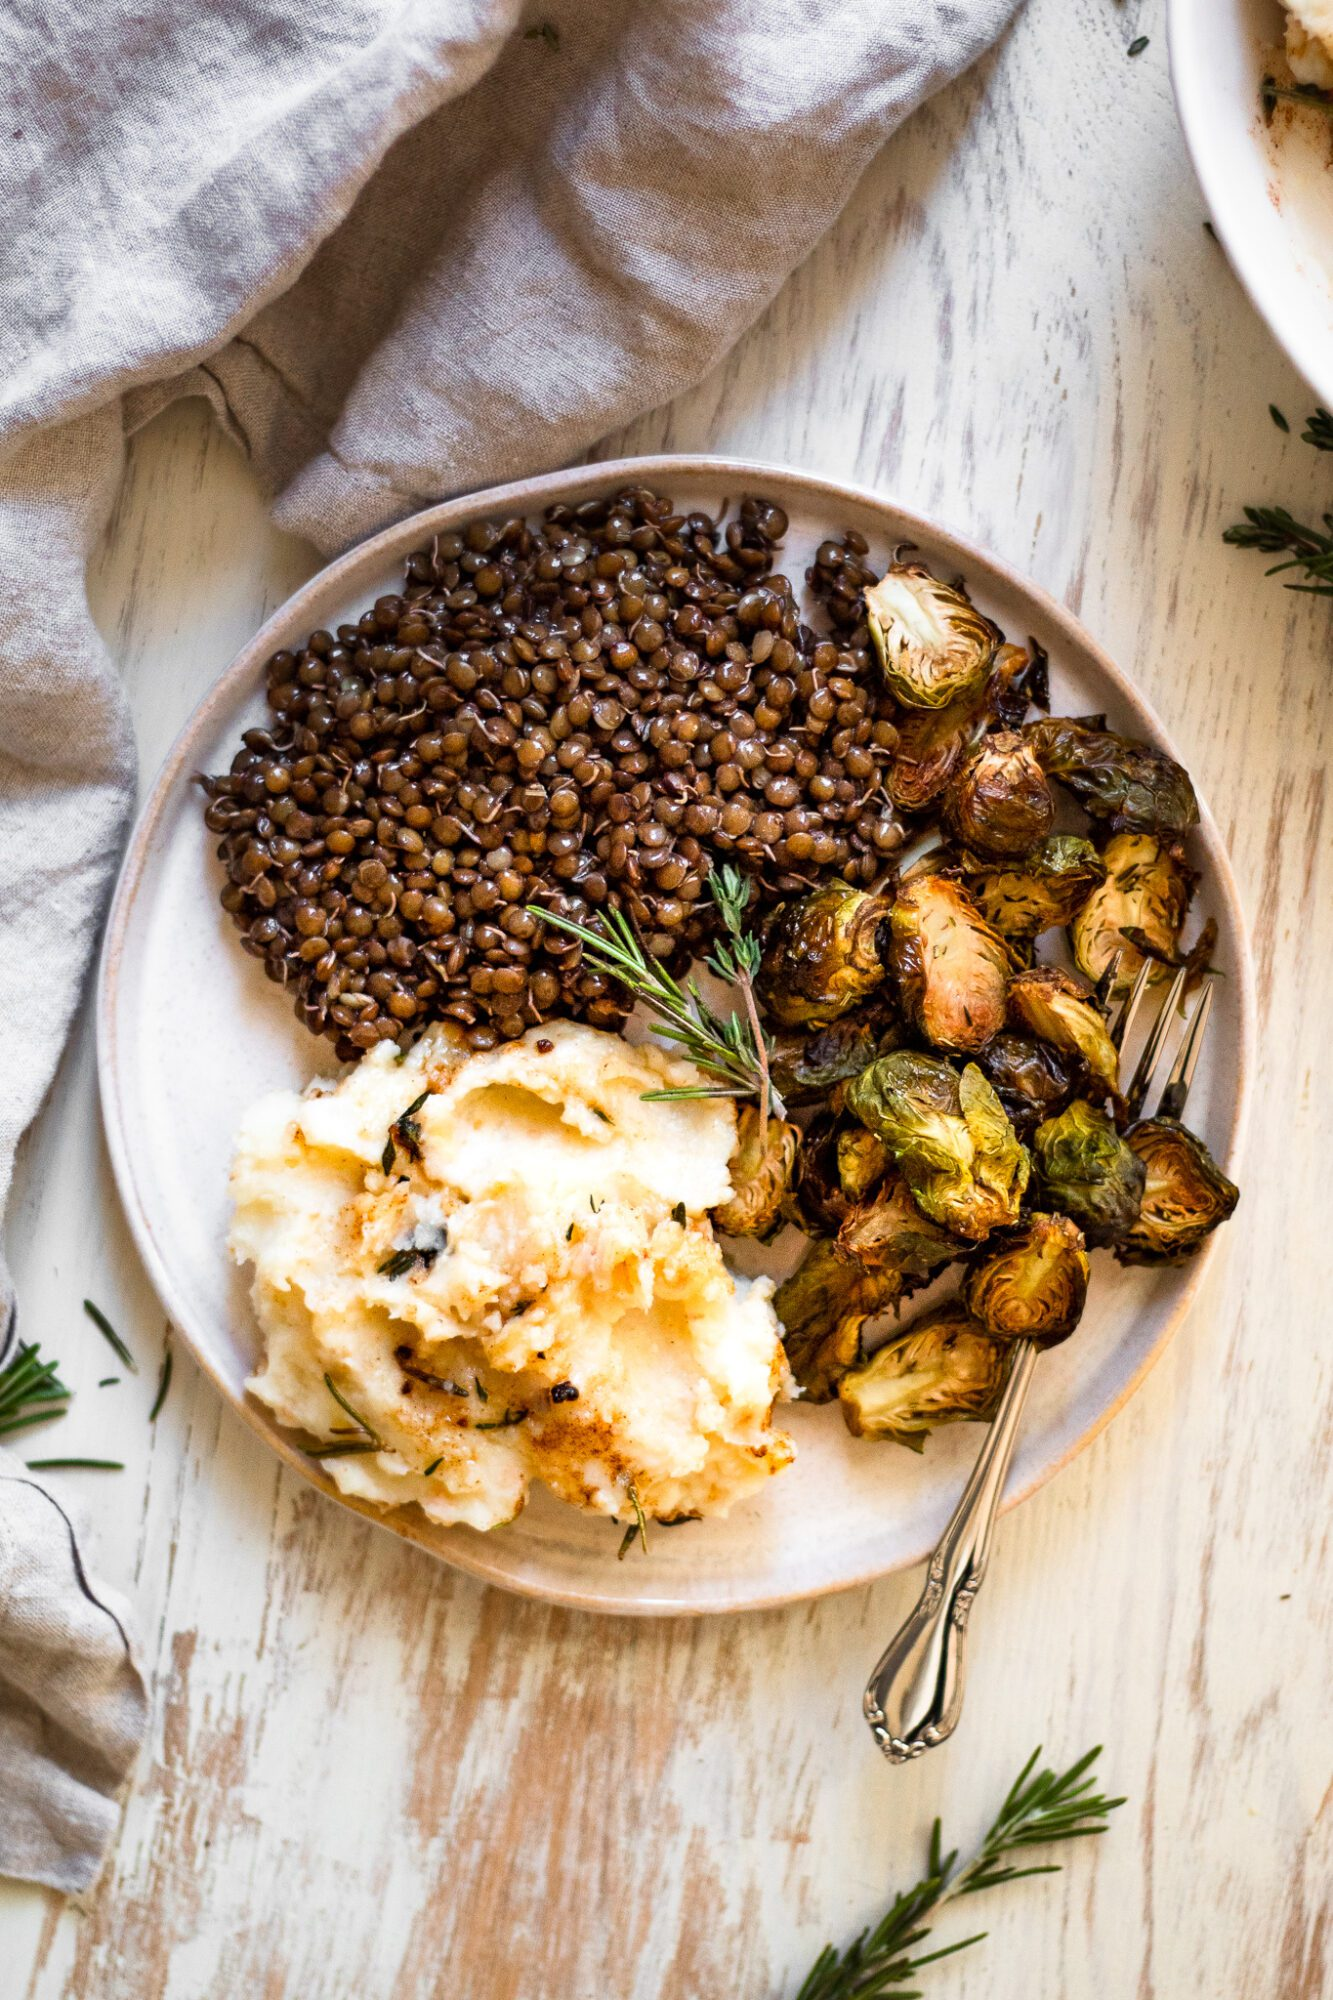 plated mashed potatoes, lentils ,and brussels sprouts